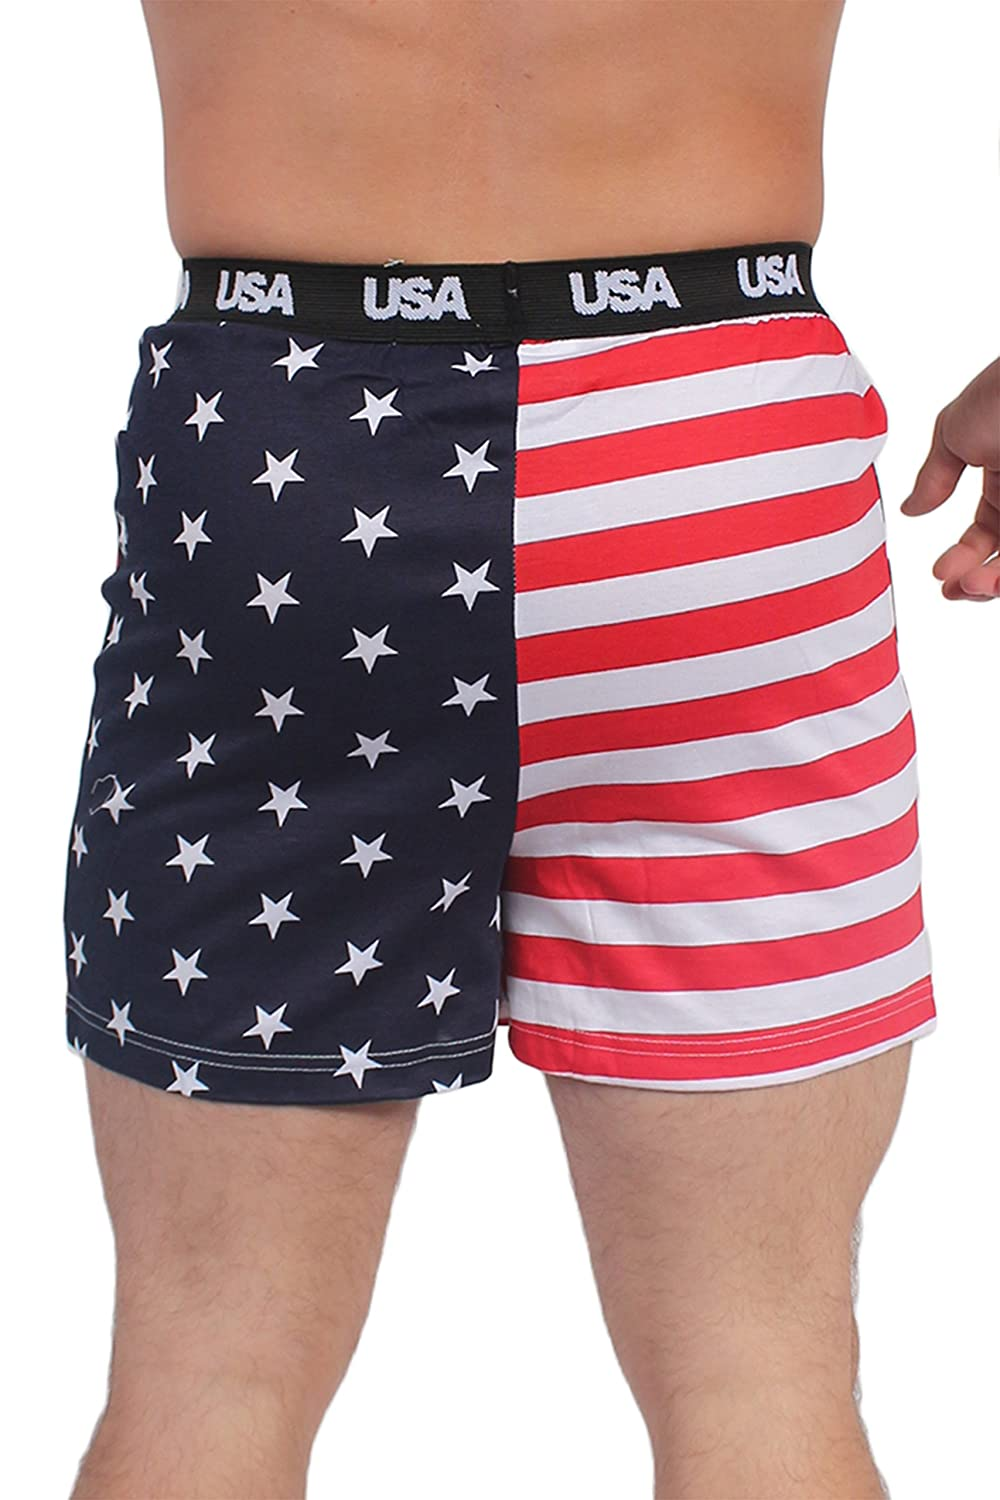 e28fb2c98d Exist MEN'S USA American Flag Patriotic USA Boxers Small at Amazon Men's  Clothing store: